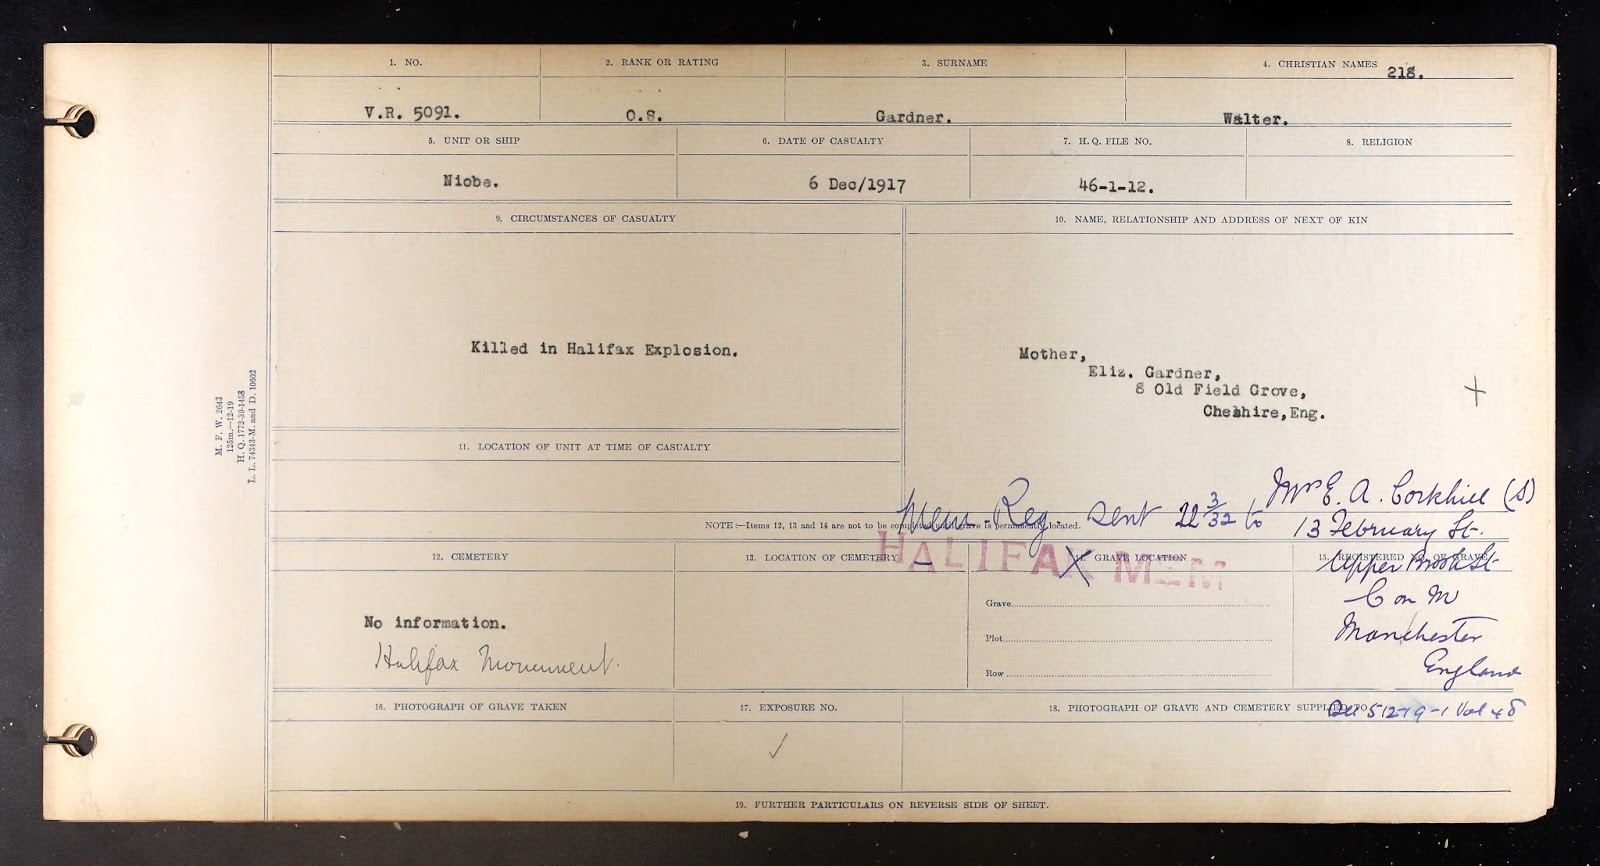 Circumstances of Death Registers– Casualty Form for Walter Gardner.